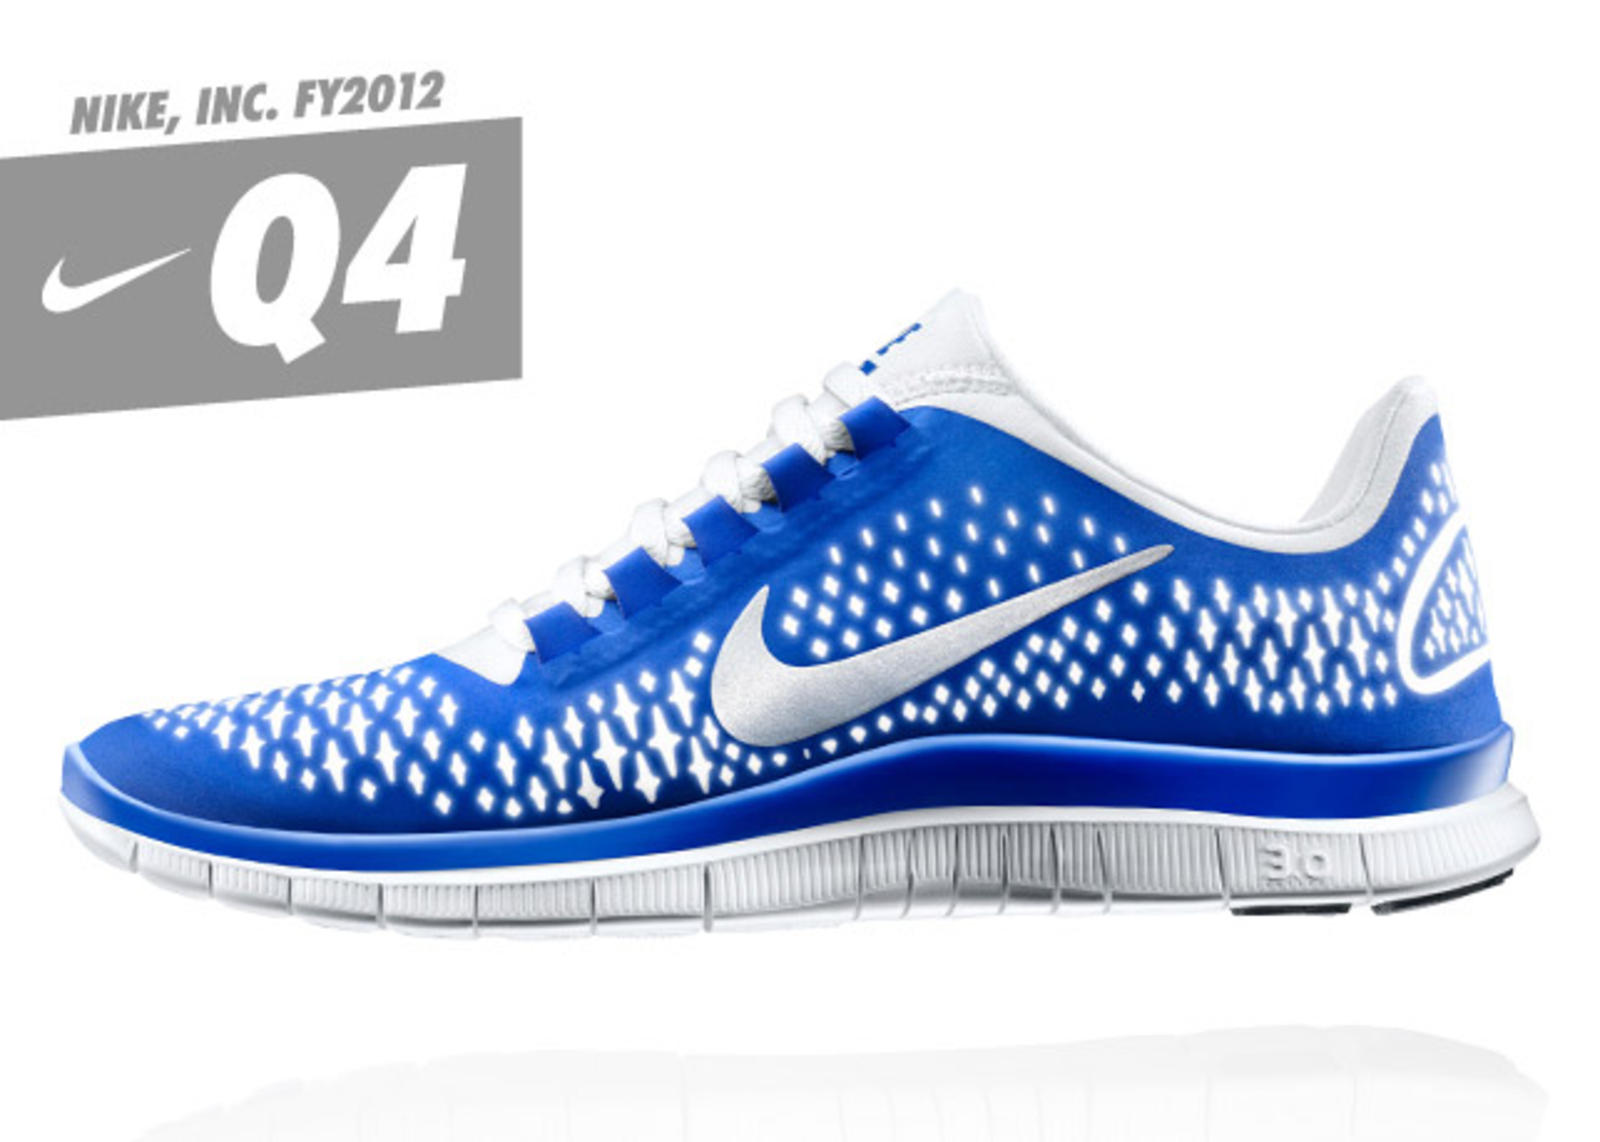 ... Nike Free Run; Running Shoes. Close. Mobile Gallery Image